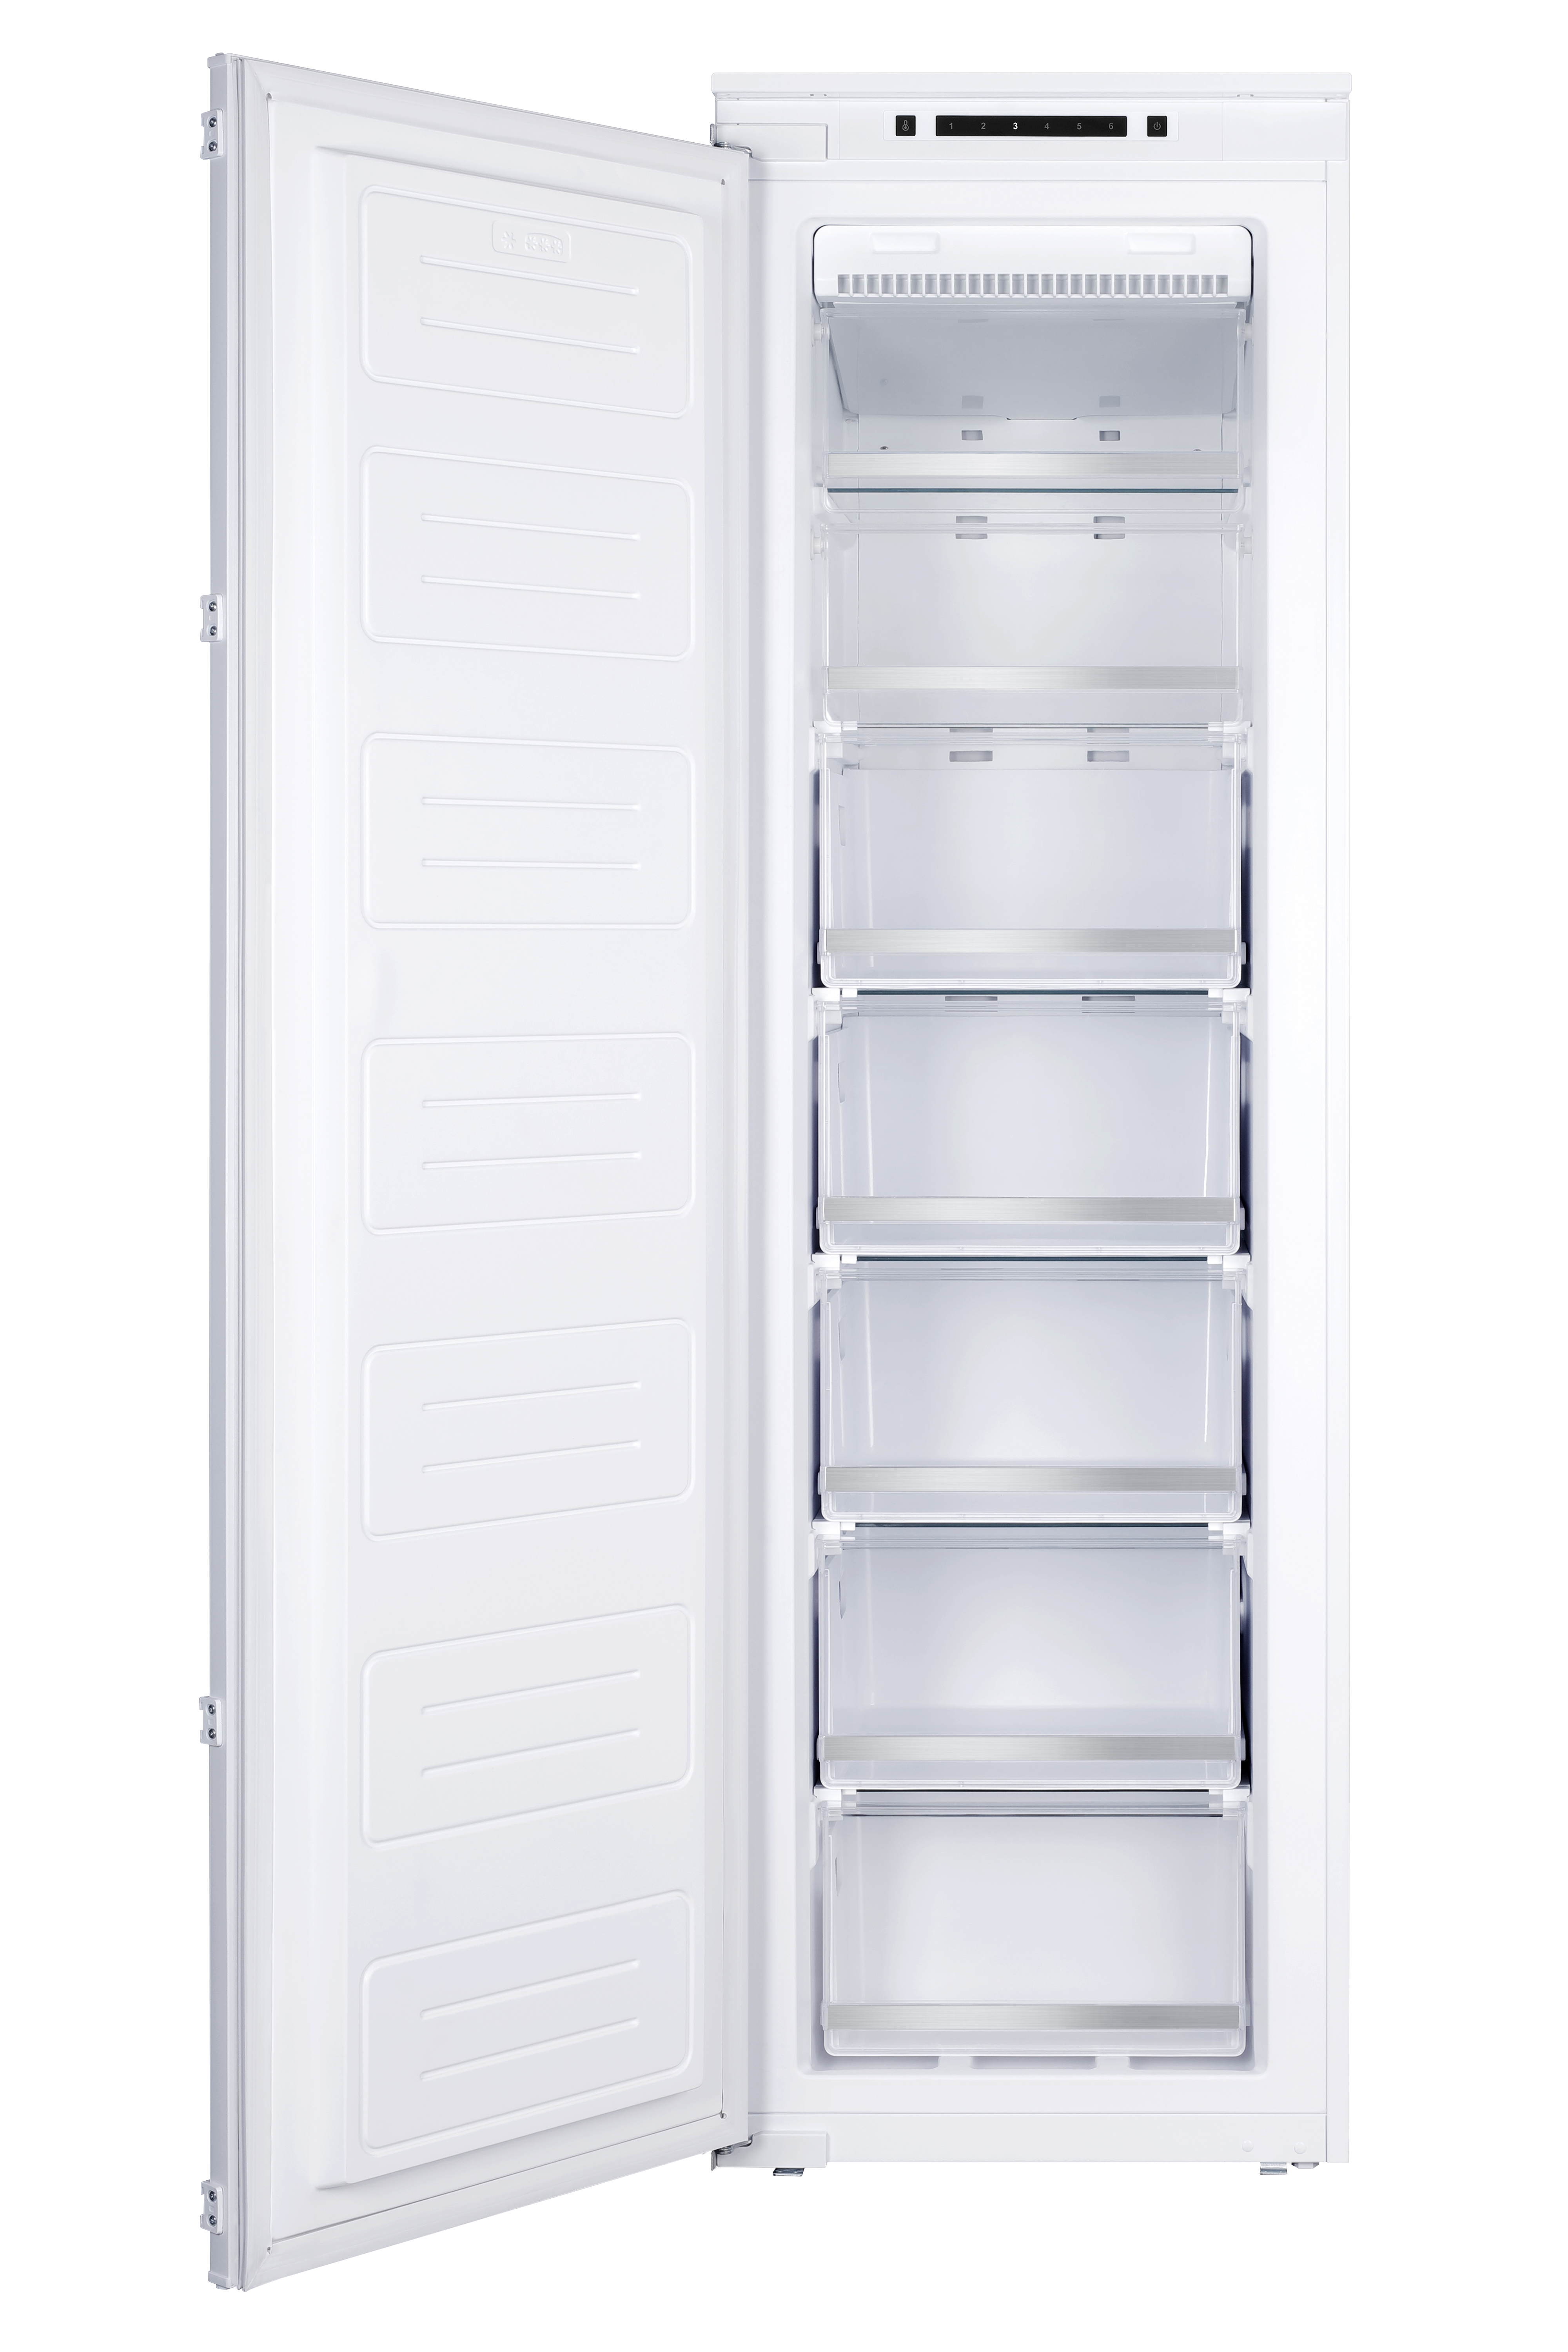 Montpellier MITF210 Tall In Column Freezer